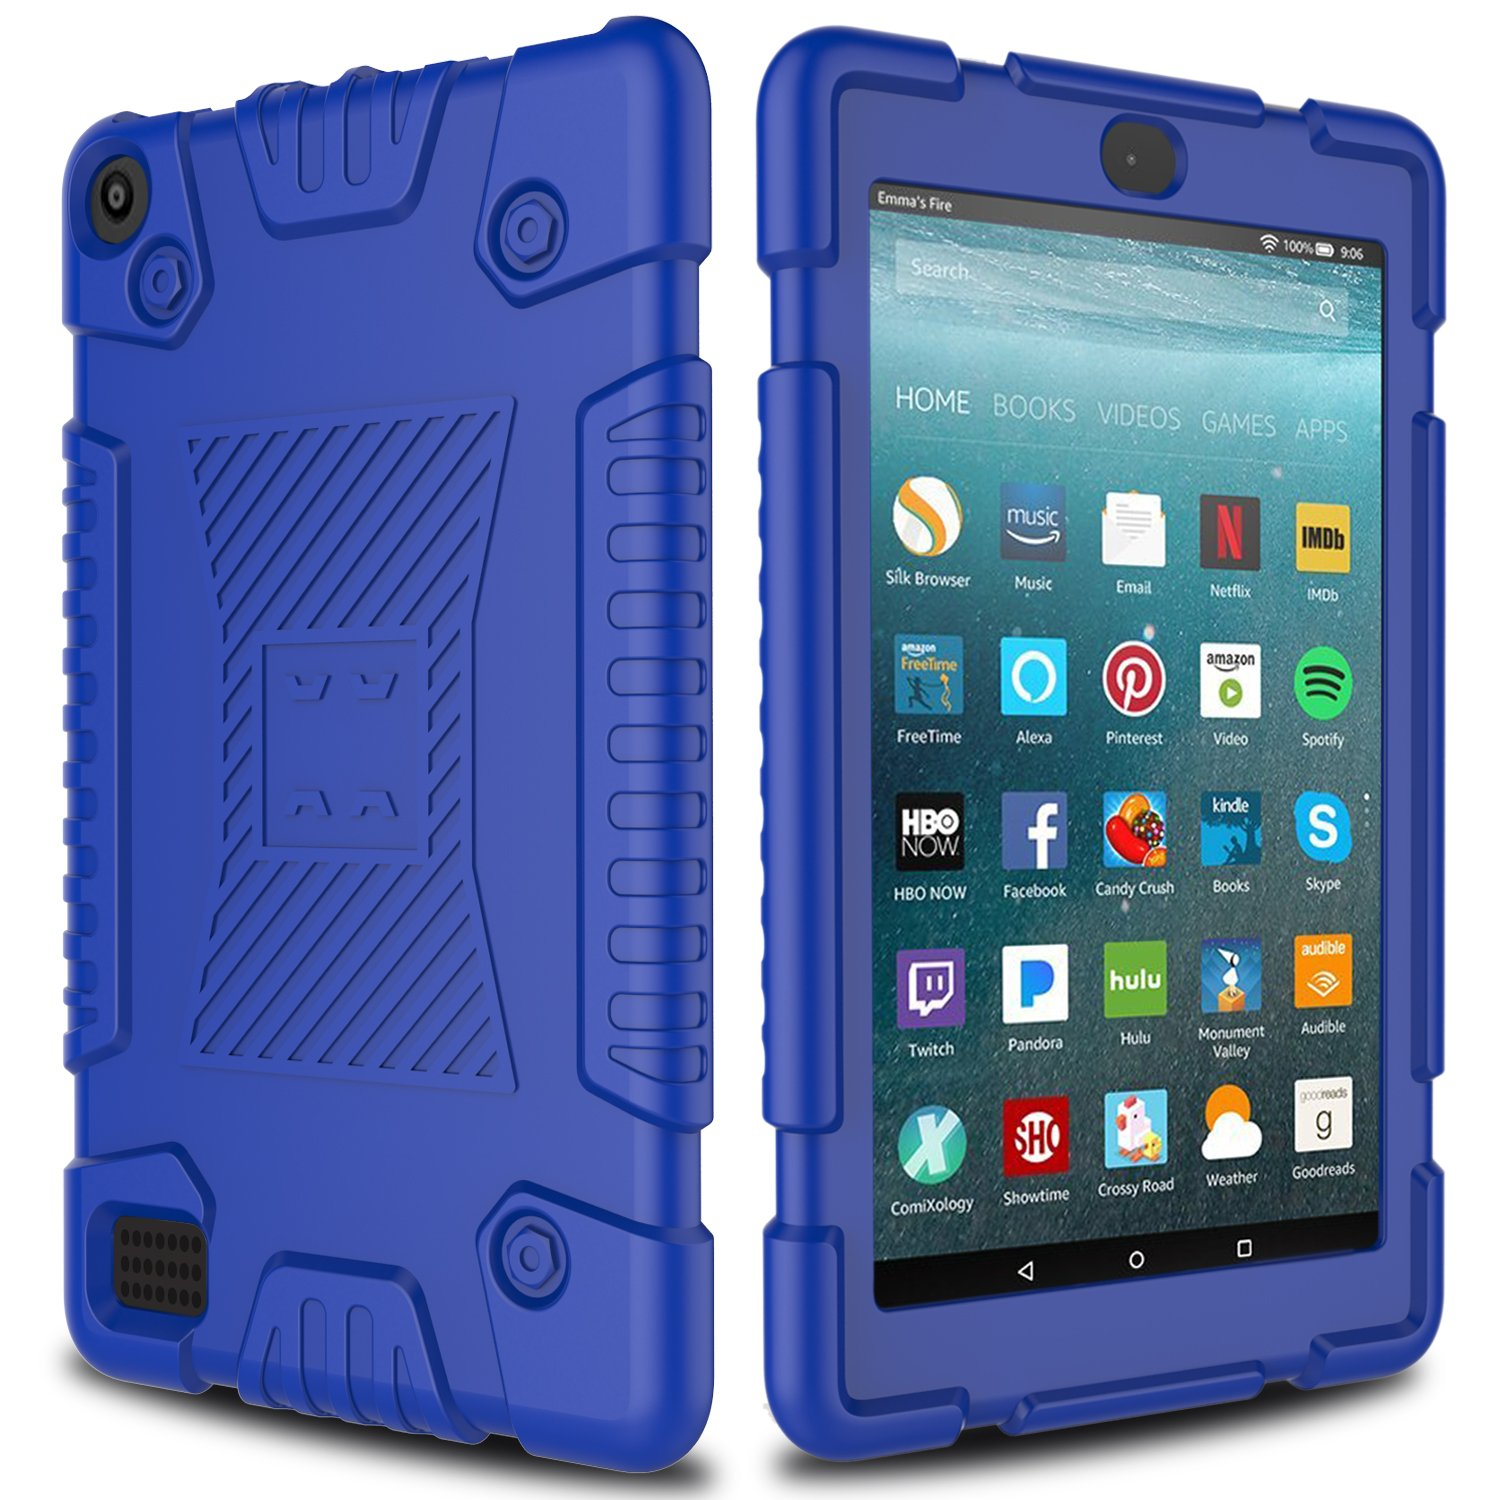 All-New Amazon Fire 7 Silicone Case, Elegant Choise Anti-Slip Shockproof Soft Silicone Kid Friendly Protective Case Cover for All-New Amazon Fire HD 7 Table (7th Generation) 2017 Release (Blue)